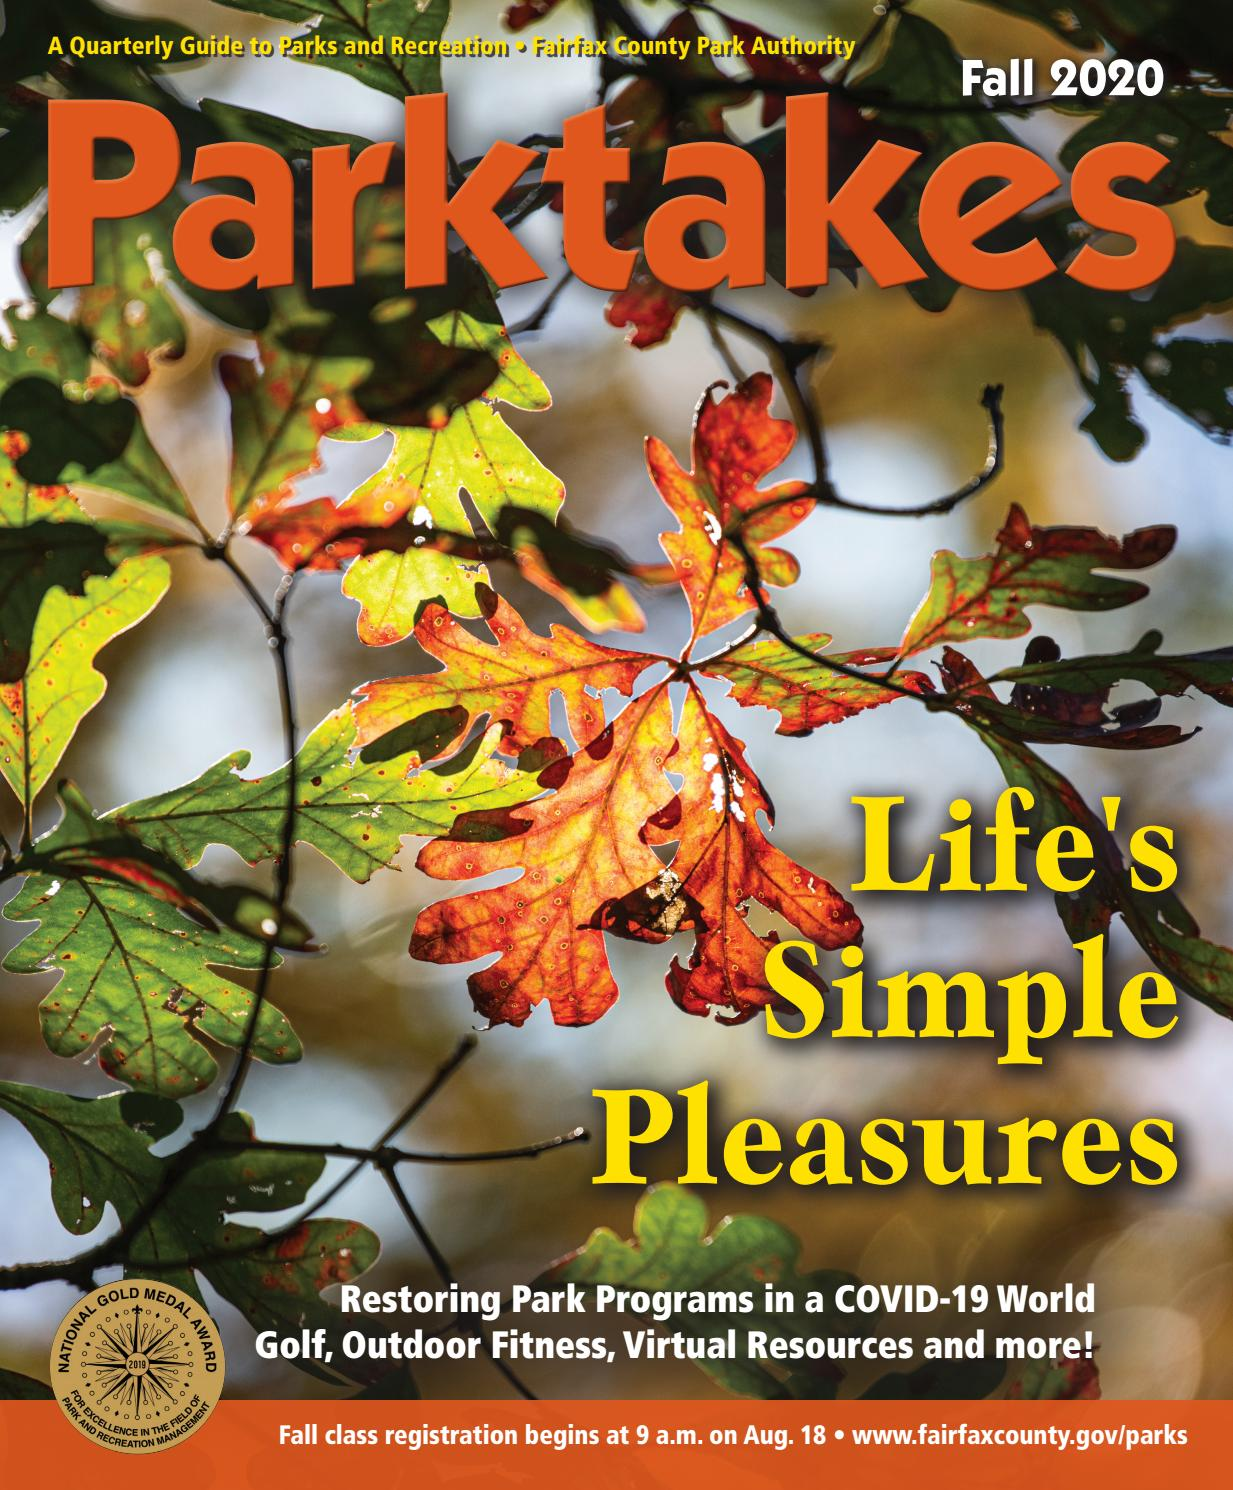 Whats The Complete Prize For Finishing Dbd Halloween 2020 Event Fall Parktakes 2020 by Fairfax County Park Authority   issuu